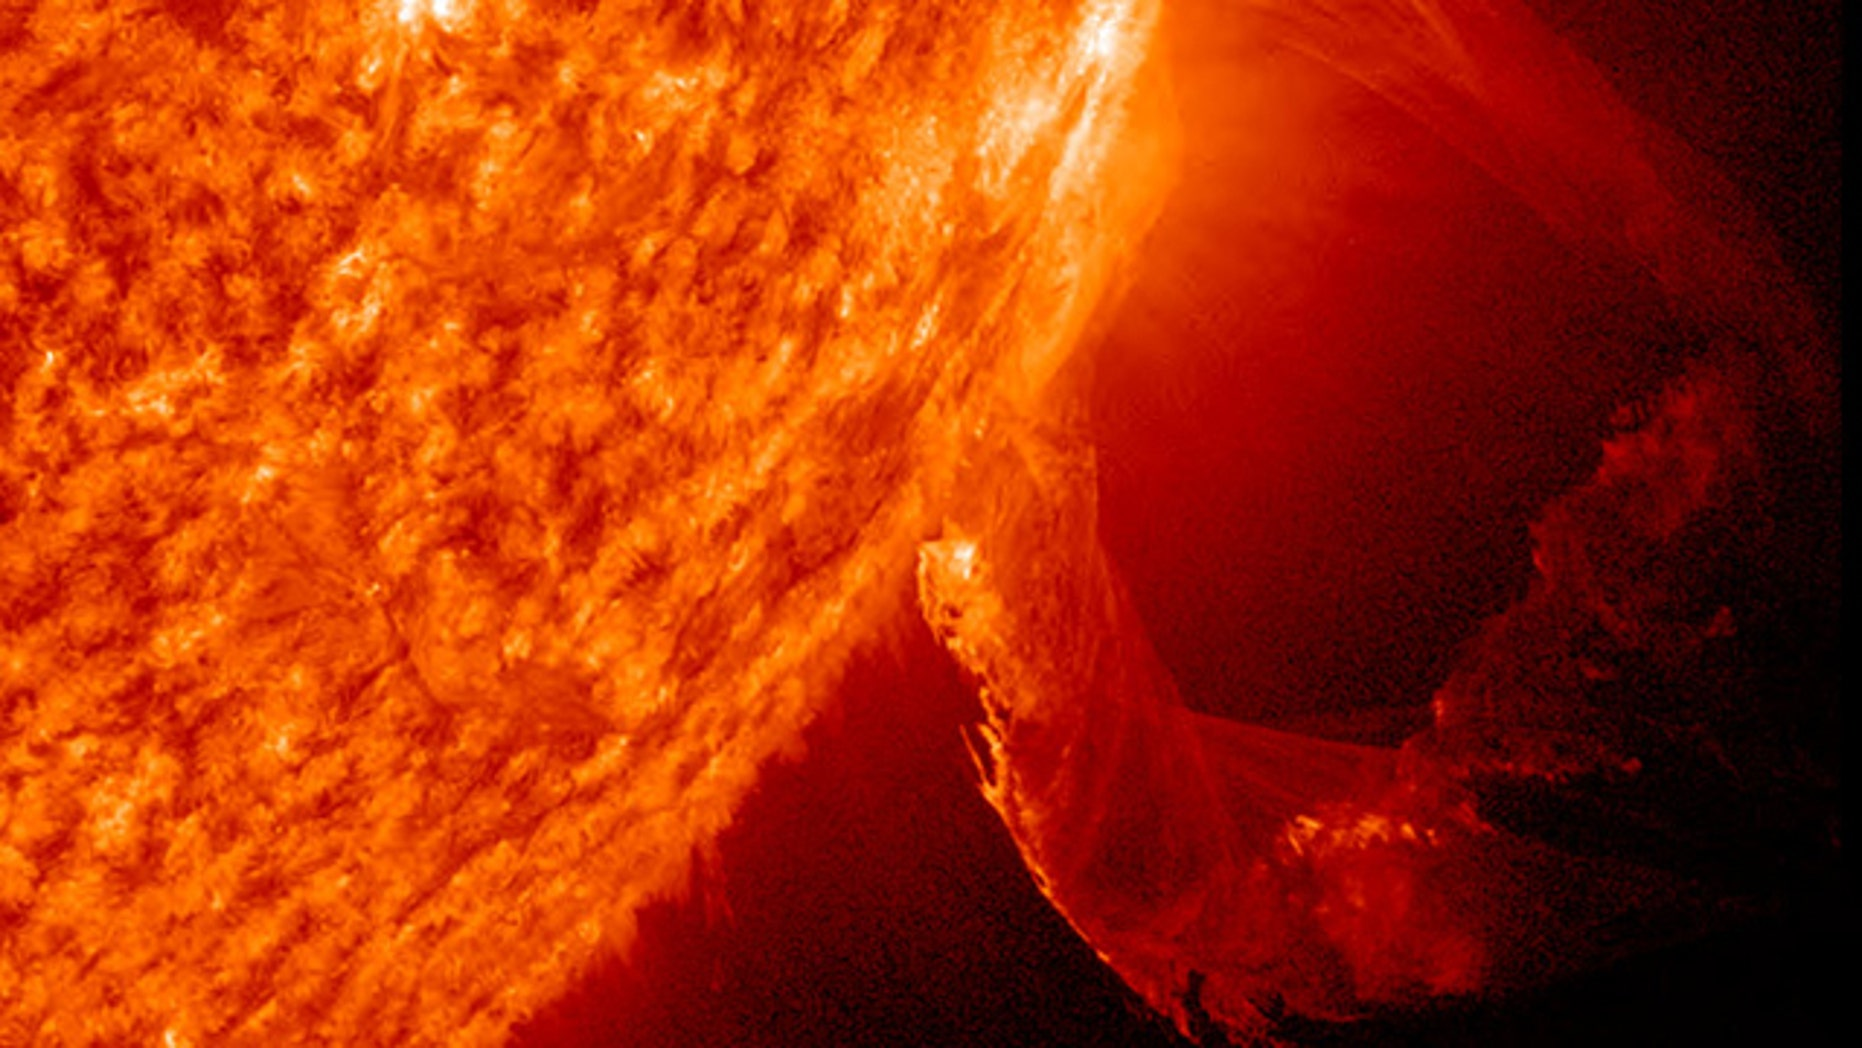 March 19, 2011: The SDO satellite captured this solar eruption as a prominence became unstable and shot into space with a distinct twisting motion.